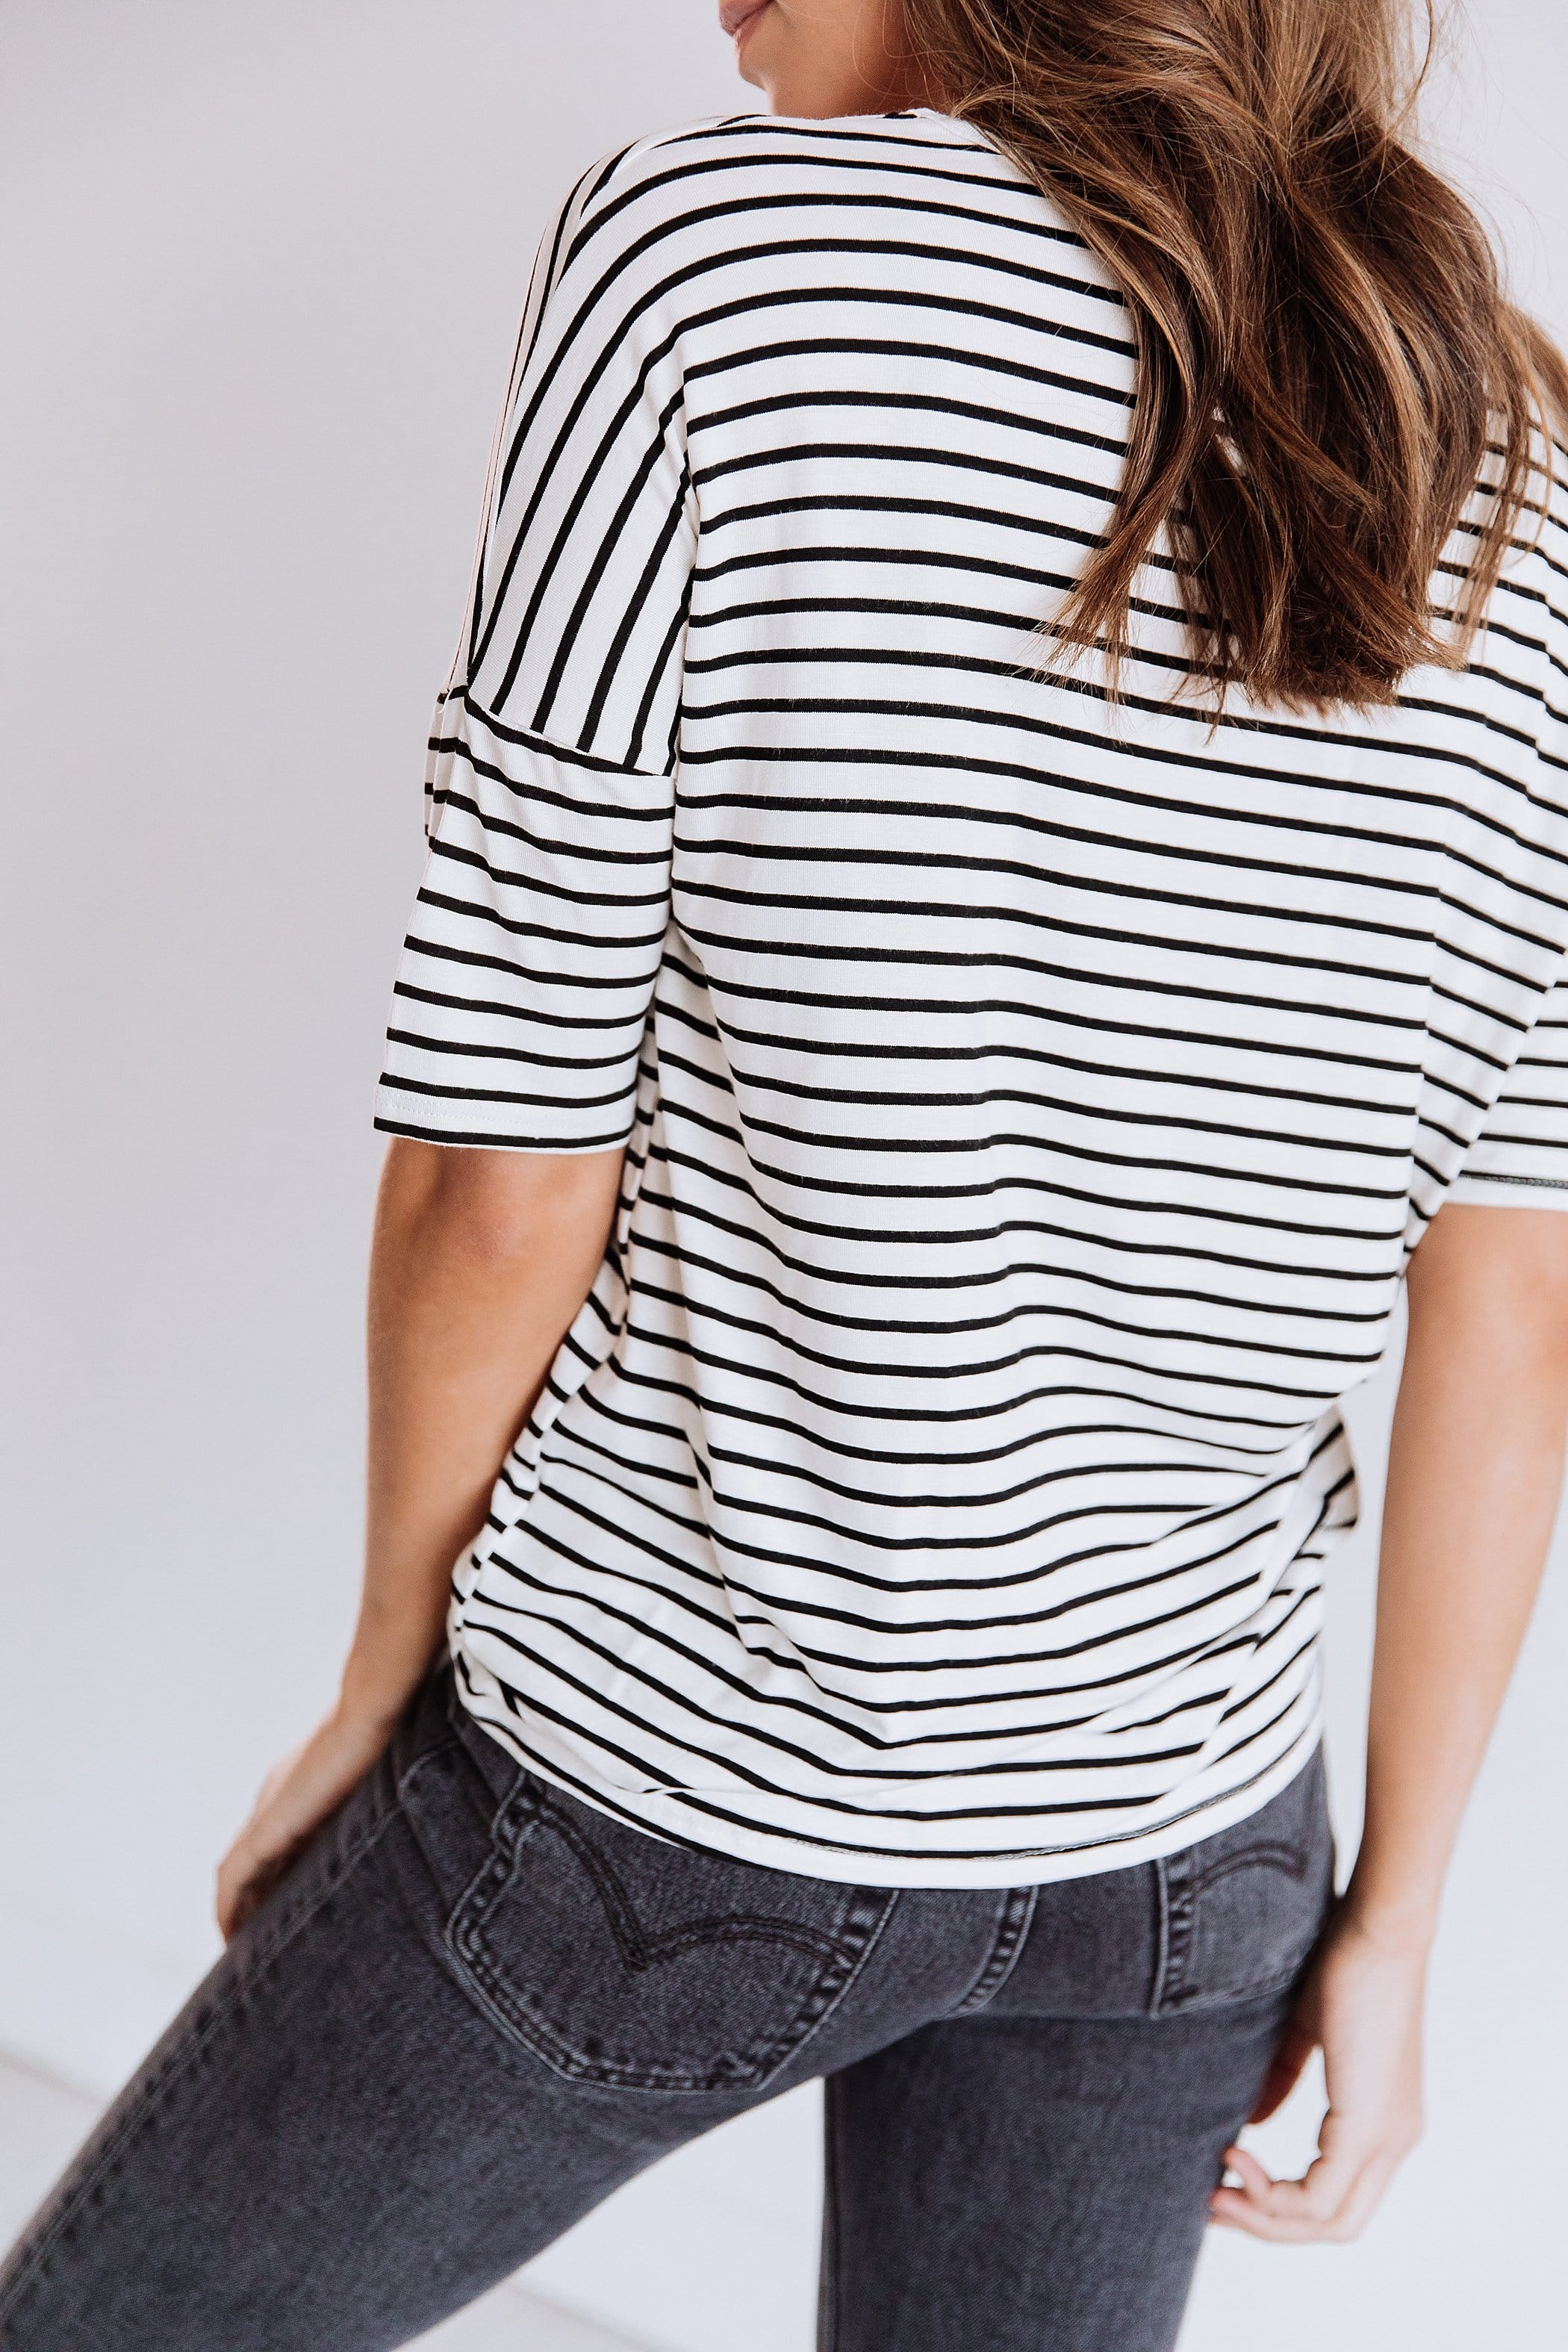 The Claremont Stripe Top in Ivory